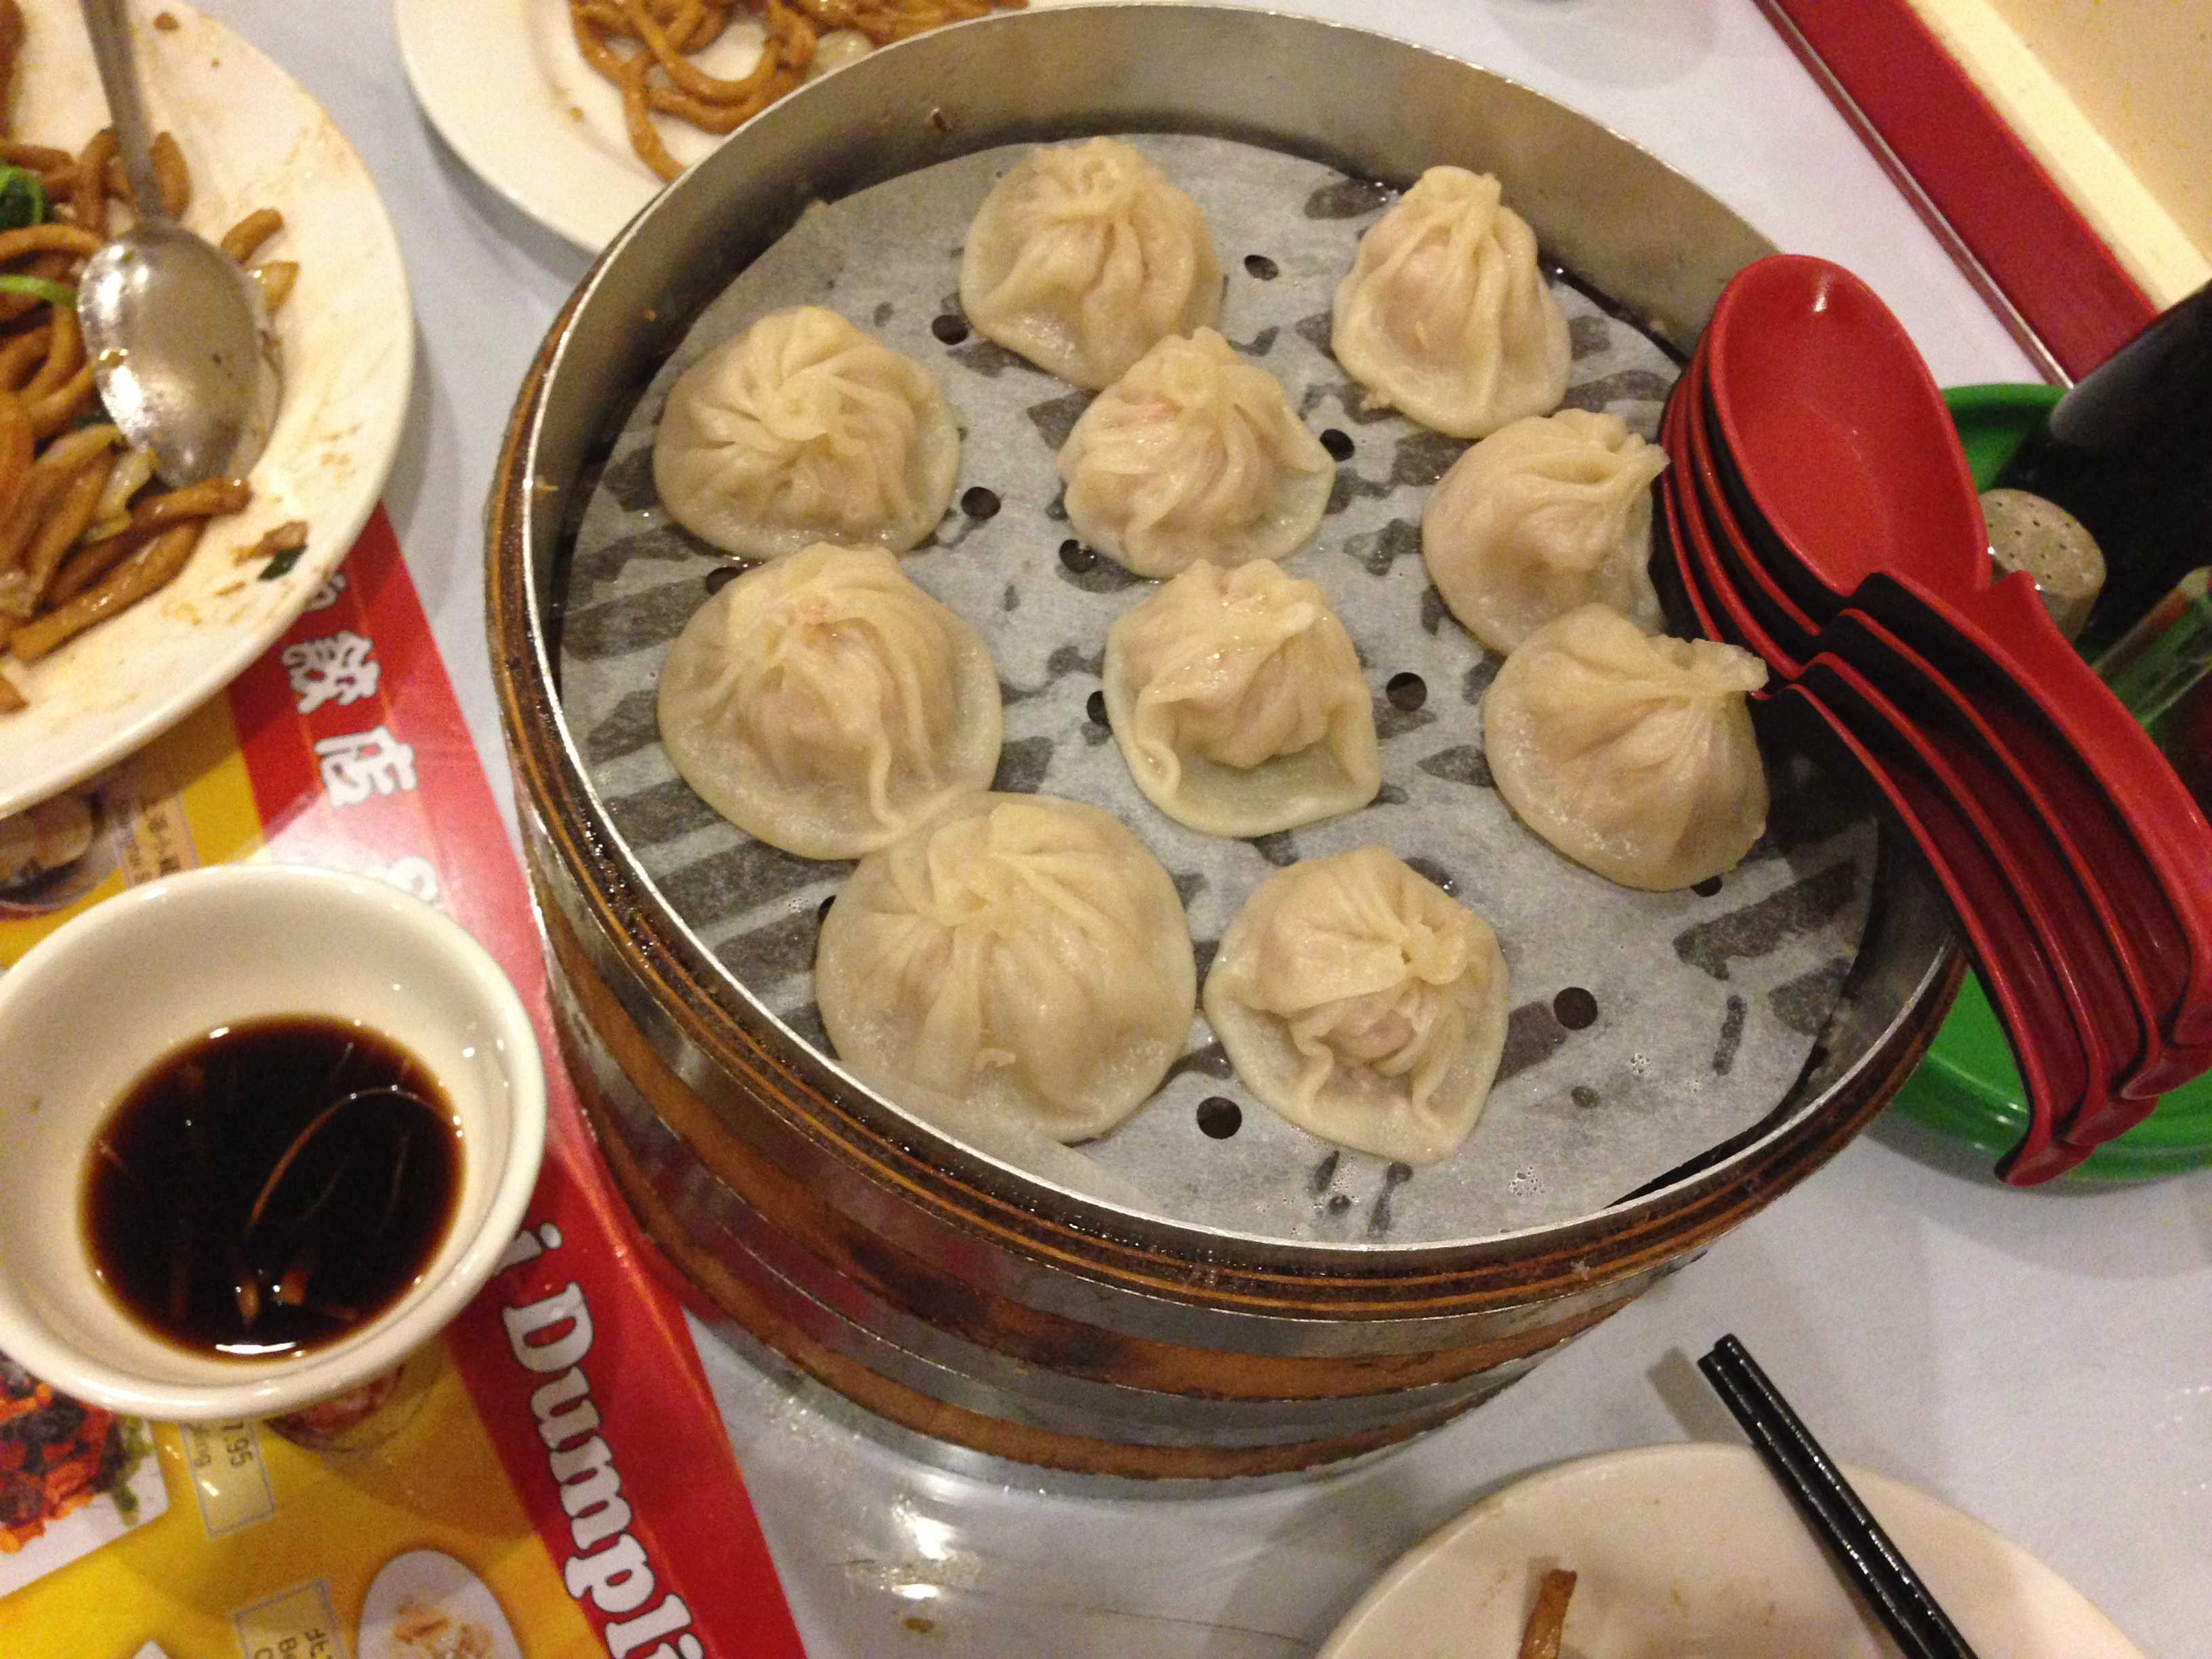 Dumplings that burst with flavor with each bite served at Shanghai Dumpling Shop.